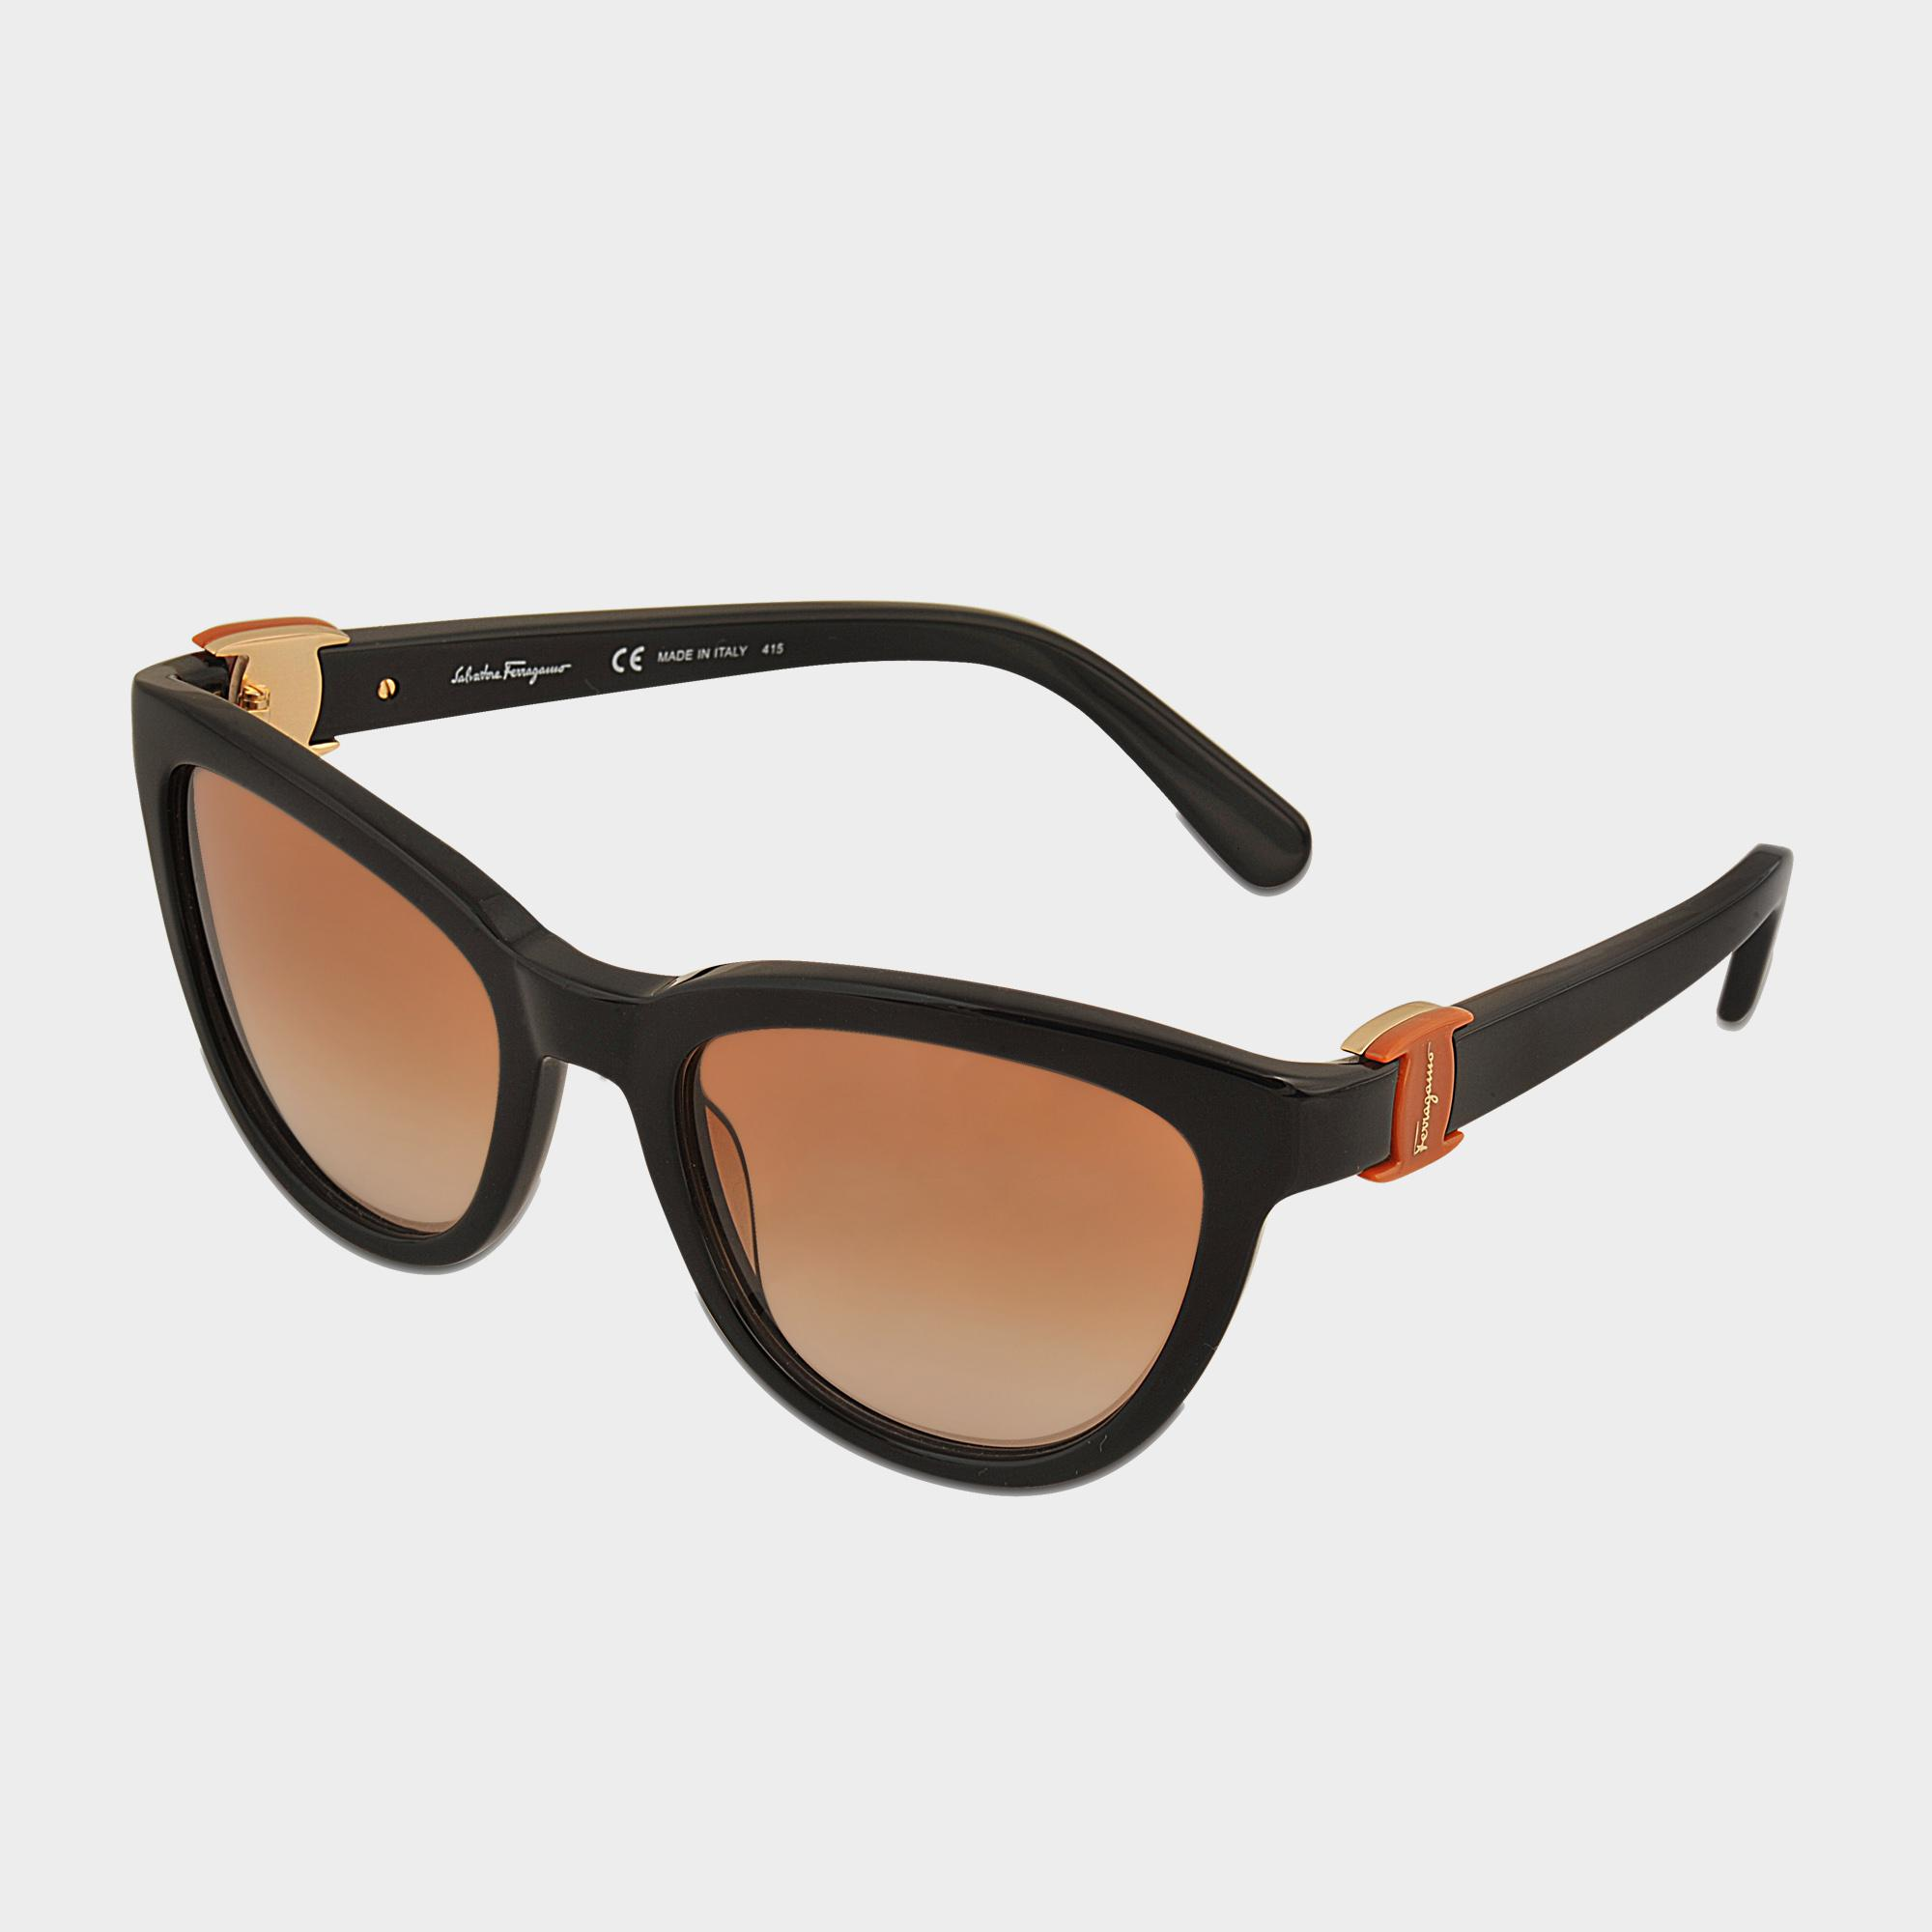 Ferragamo Sf817s Vara Sunglasses in Black